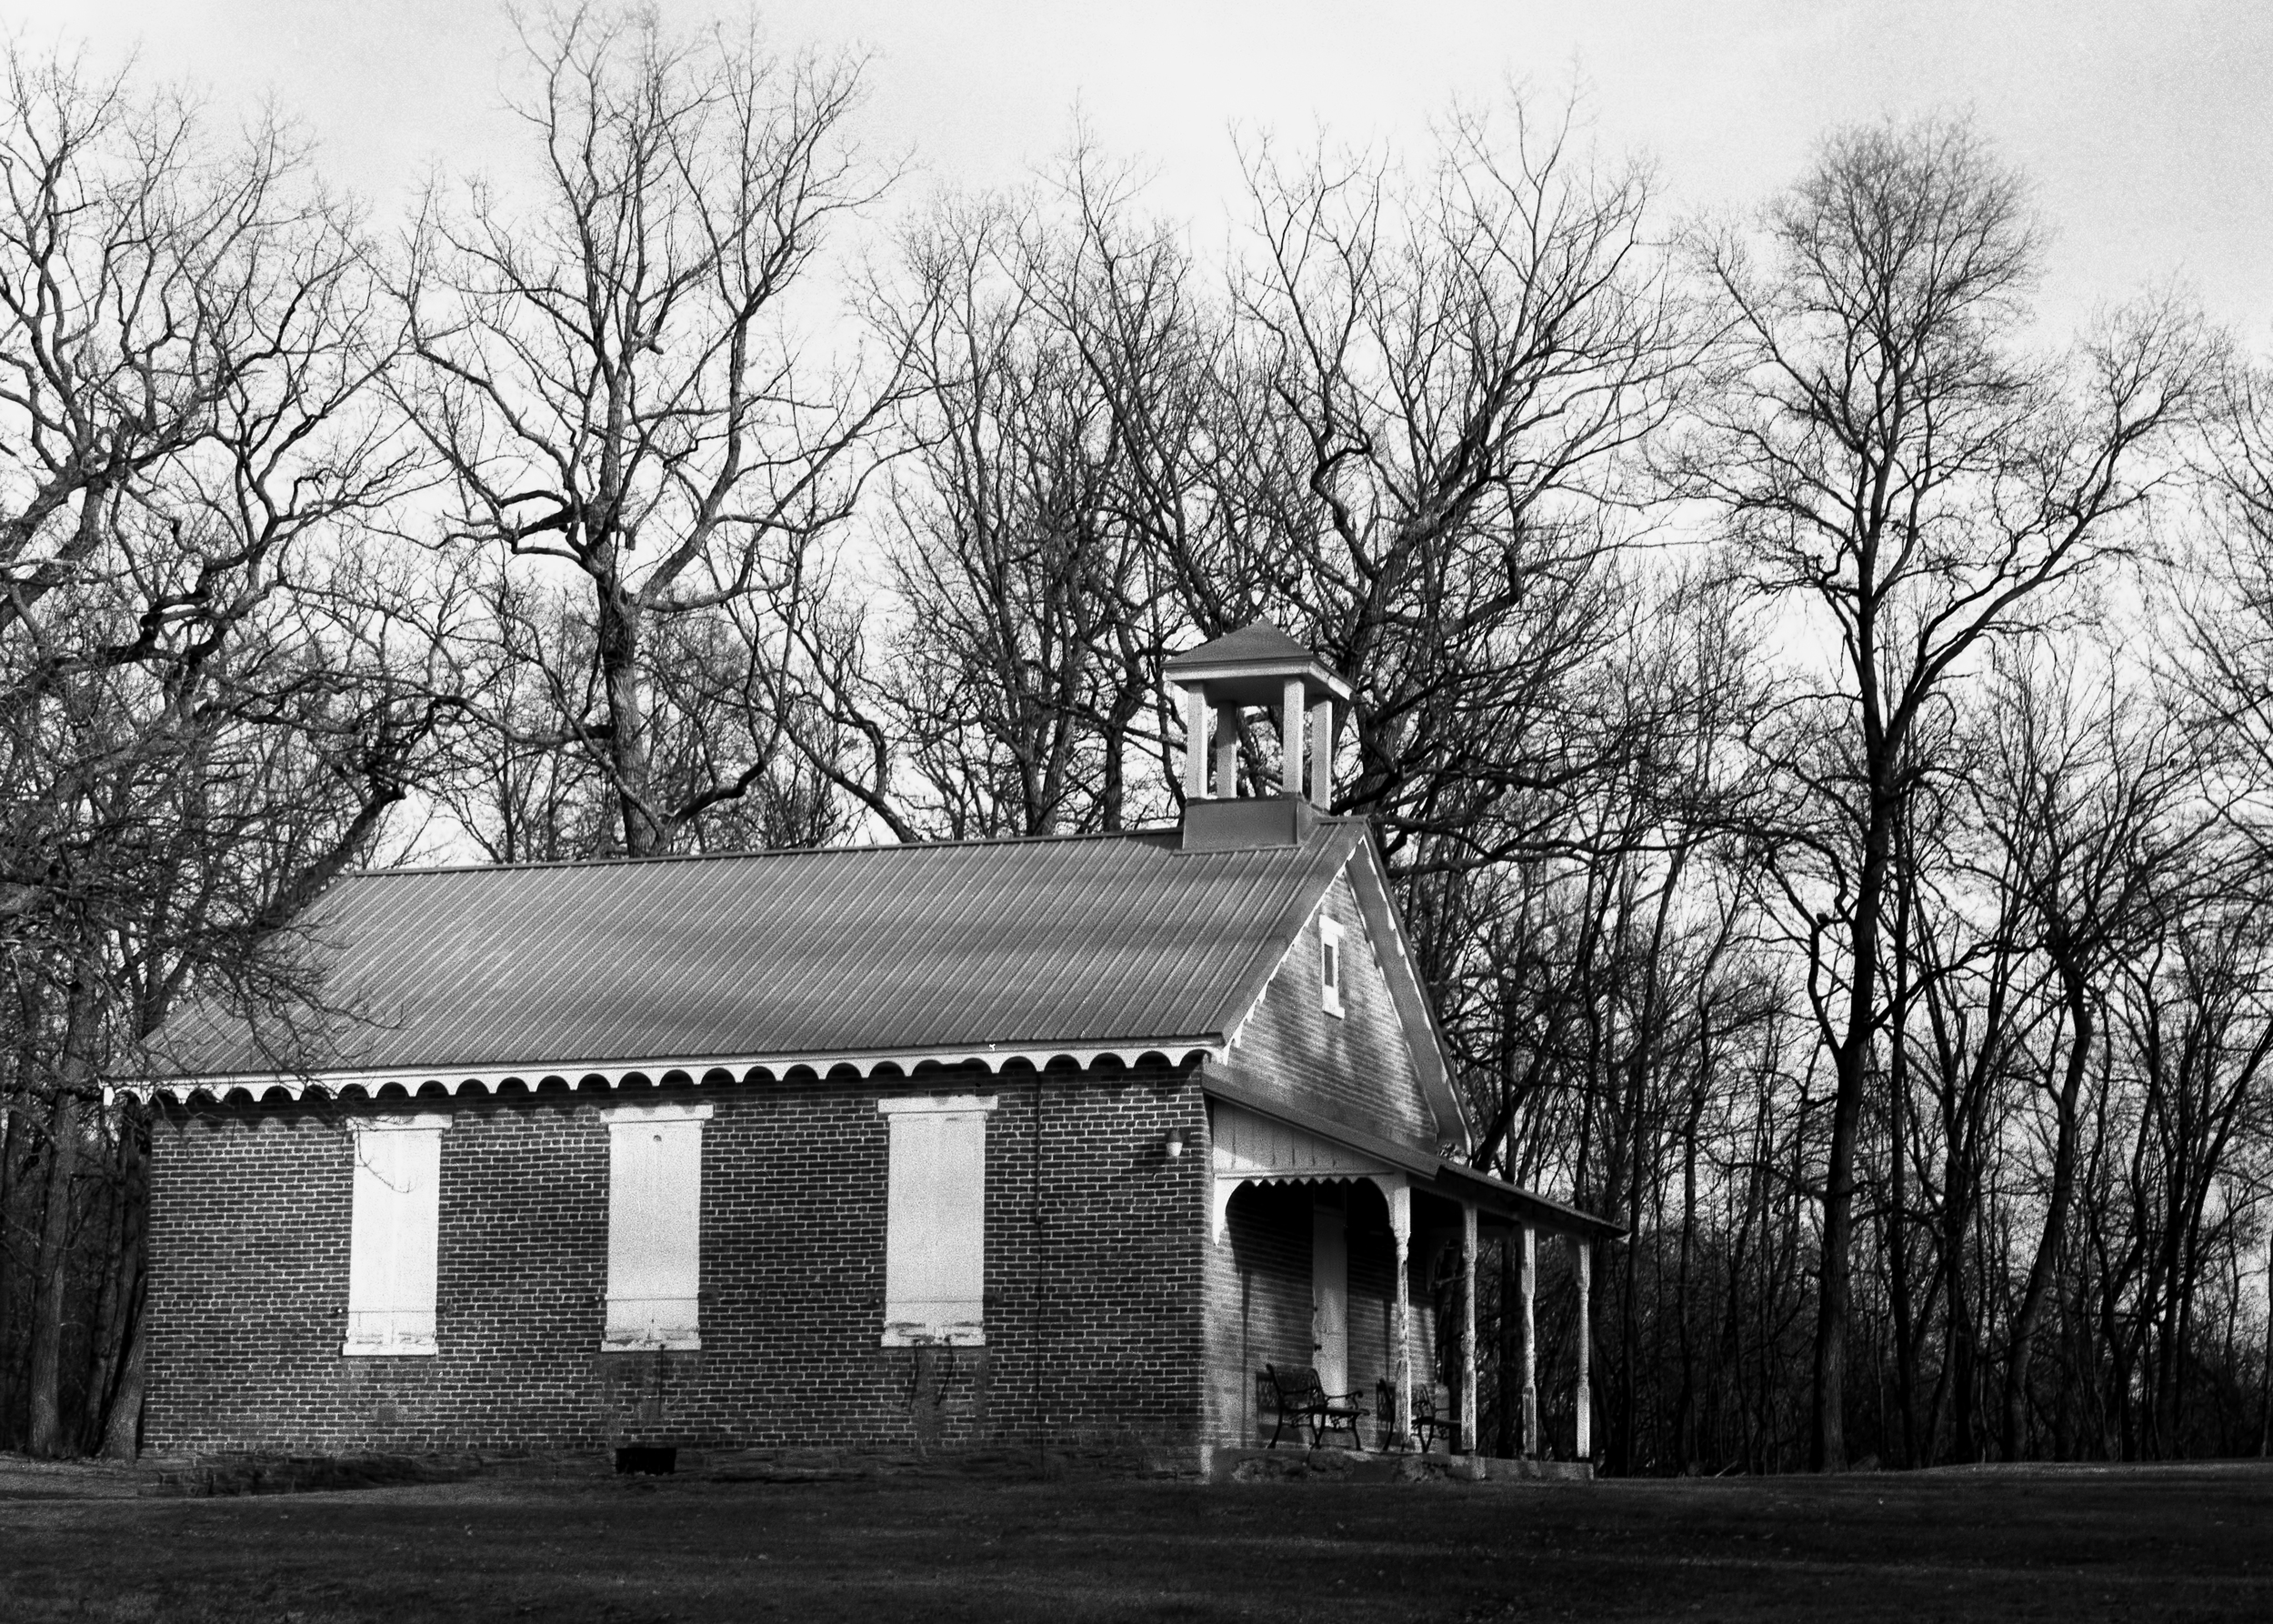 4x5_for_365_project_002_moselem_schoolhouse_001_full.jpg